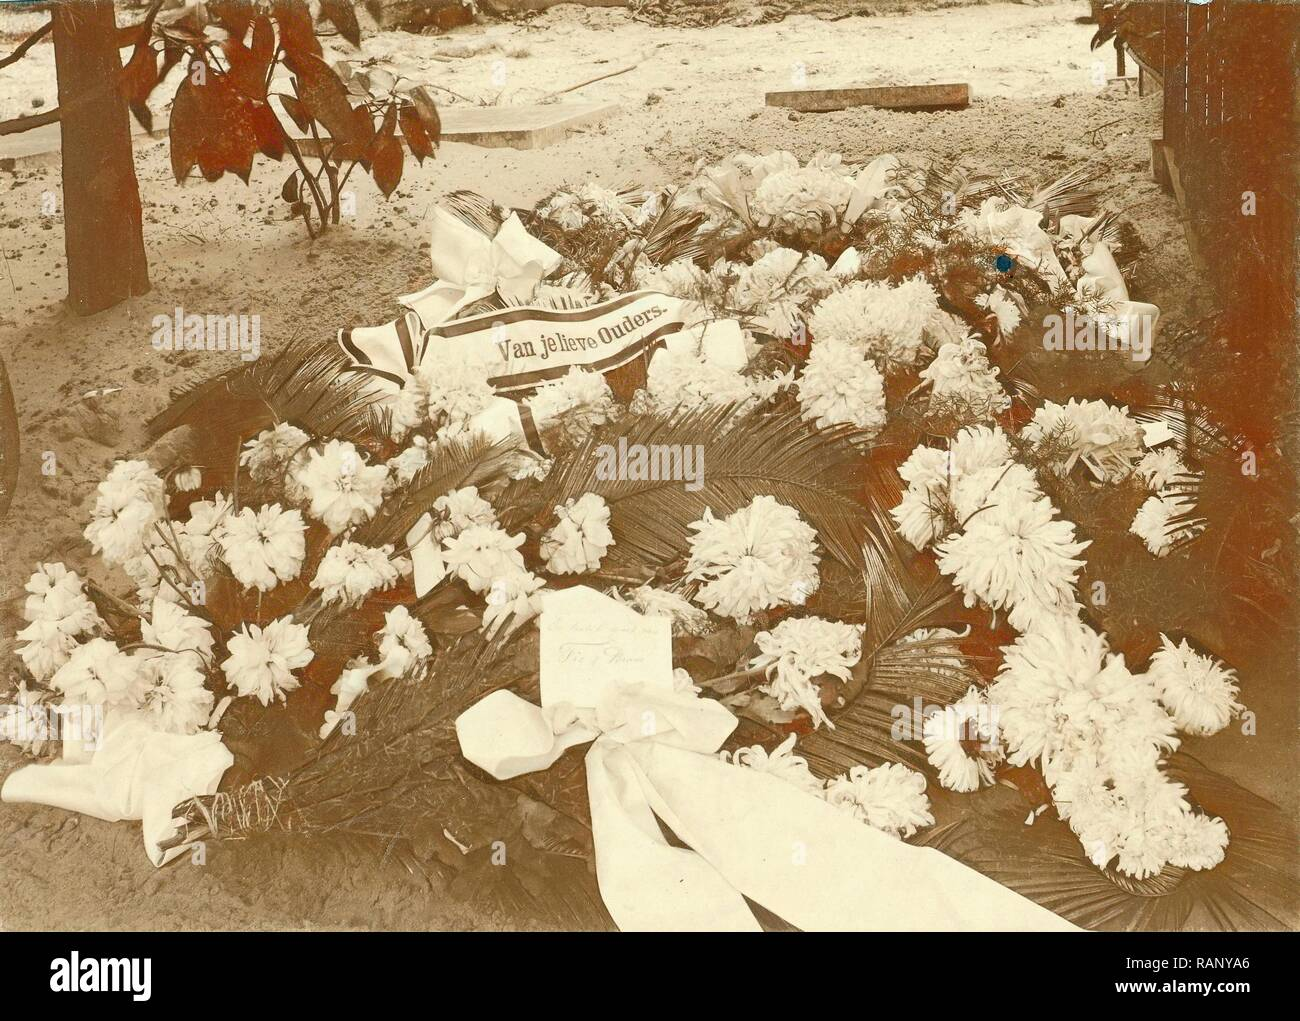 Bouquets on the grave of David Vermeulen, Anonymous, 1914 - 1920. Reimagined by Gibon. Classic art with a modern reimagined - Stock Image